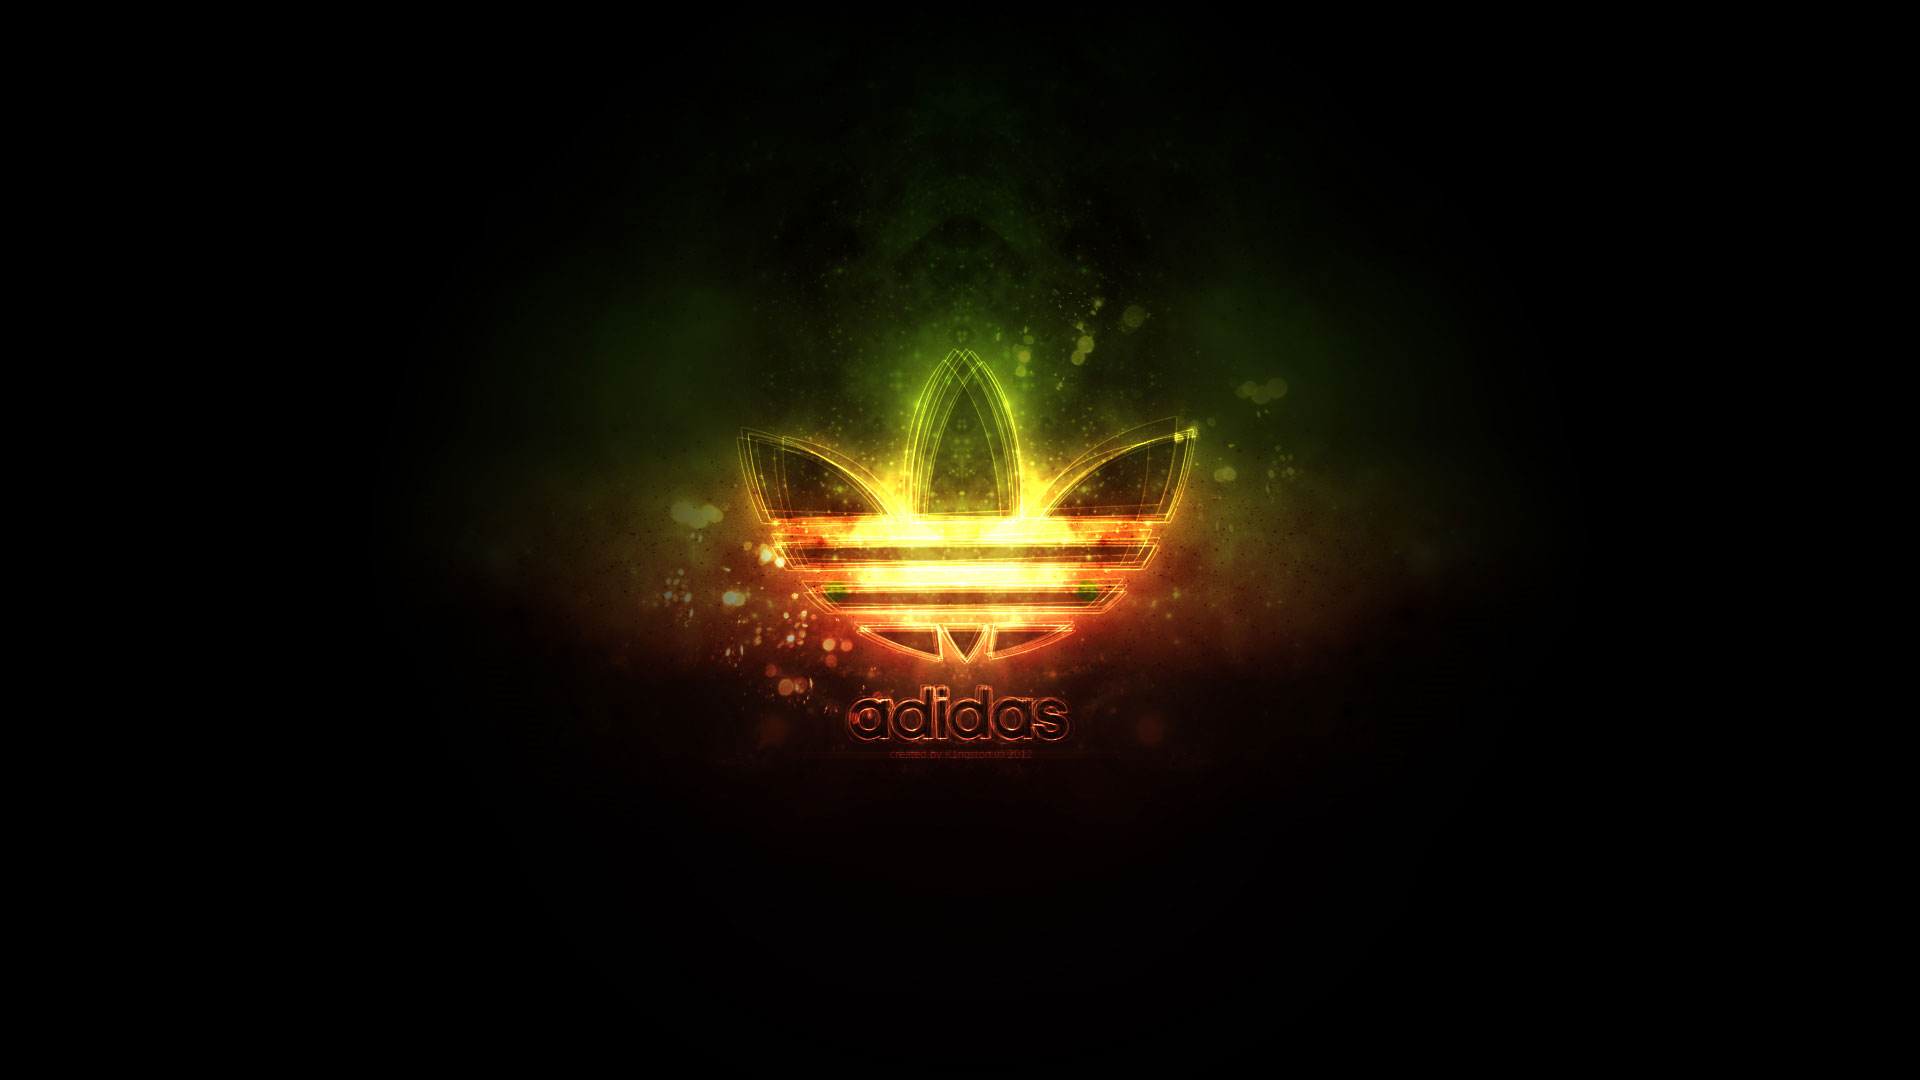 Wallpapers   Adidas Neon Lights Logo 1920x1080 wallpaper 1920x1080